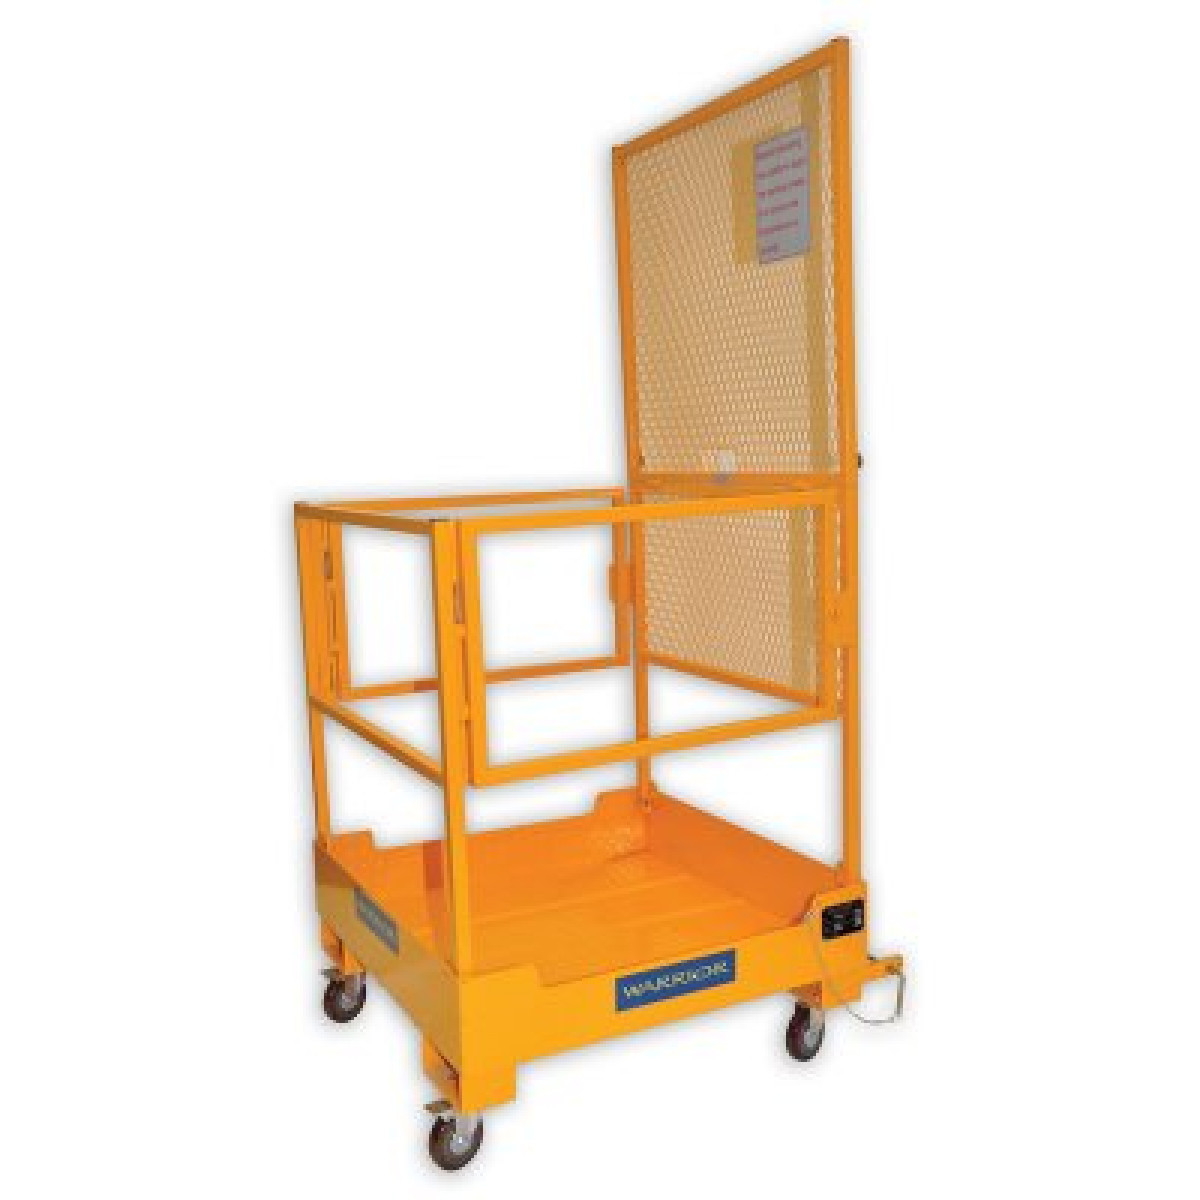 Warrior Forklift Access Cage